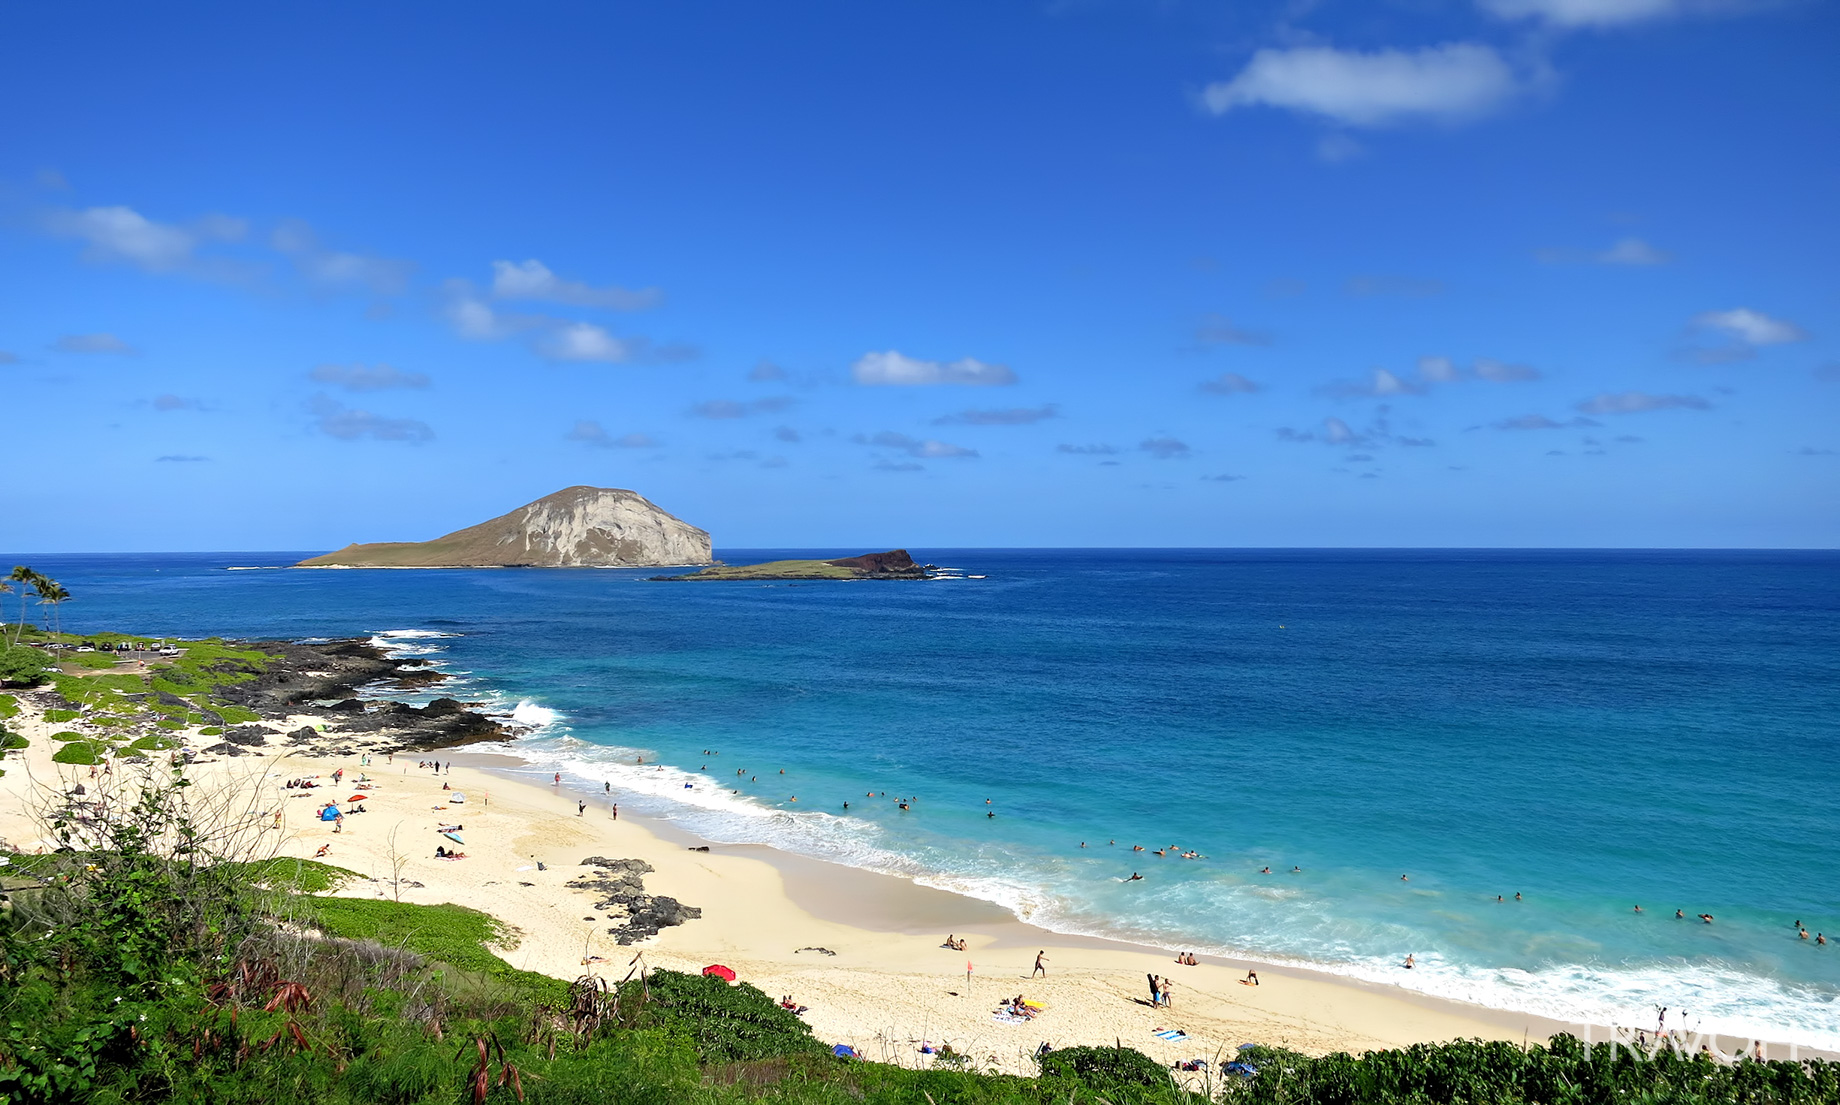 Makapuu Beach – Oahu, Hawaii